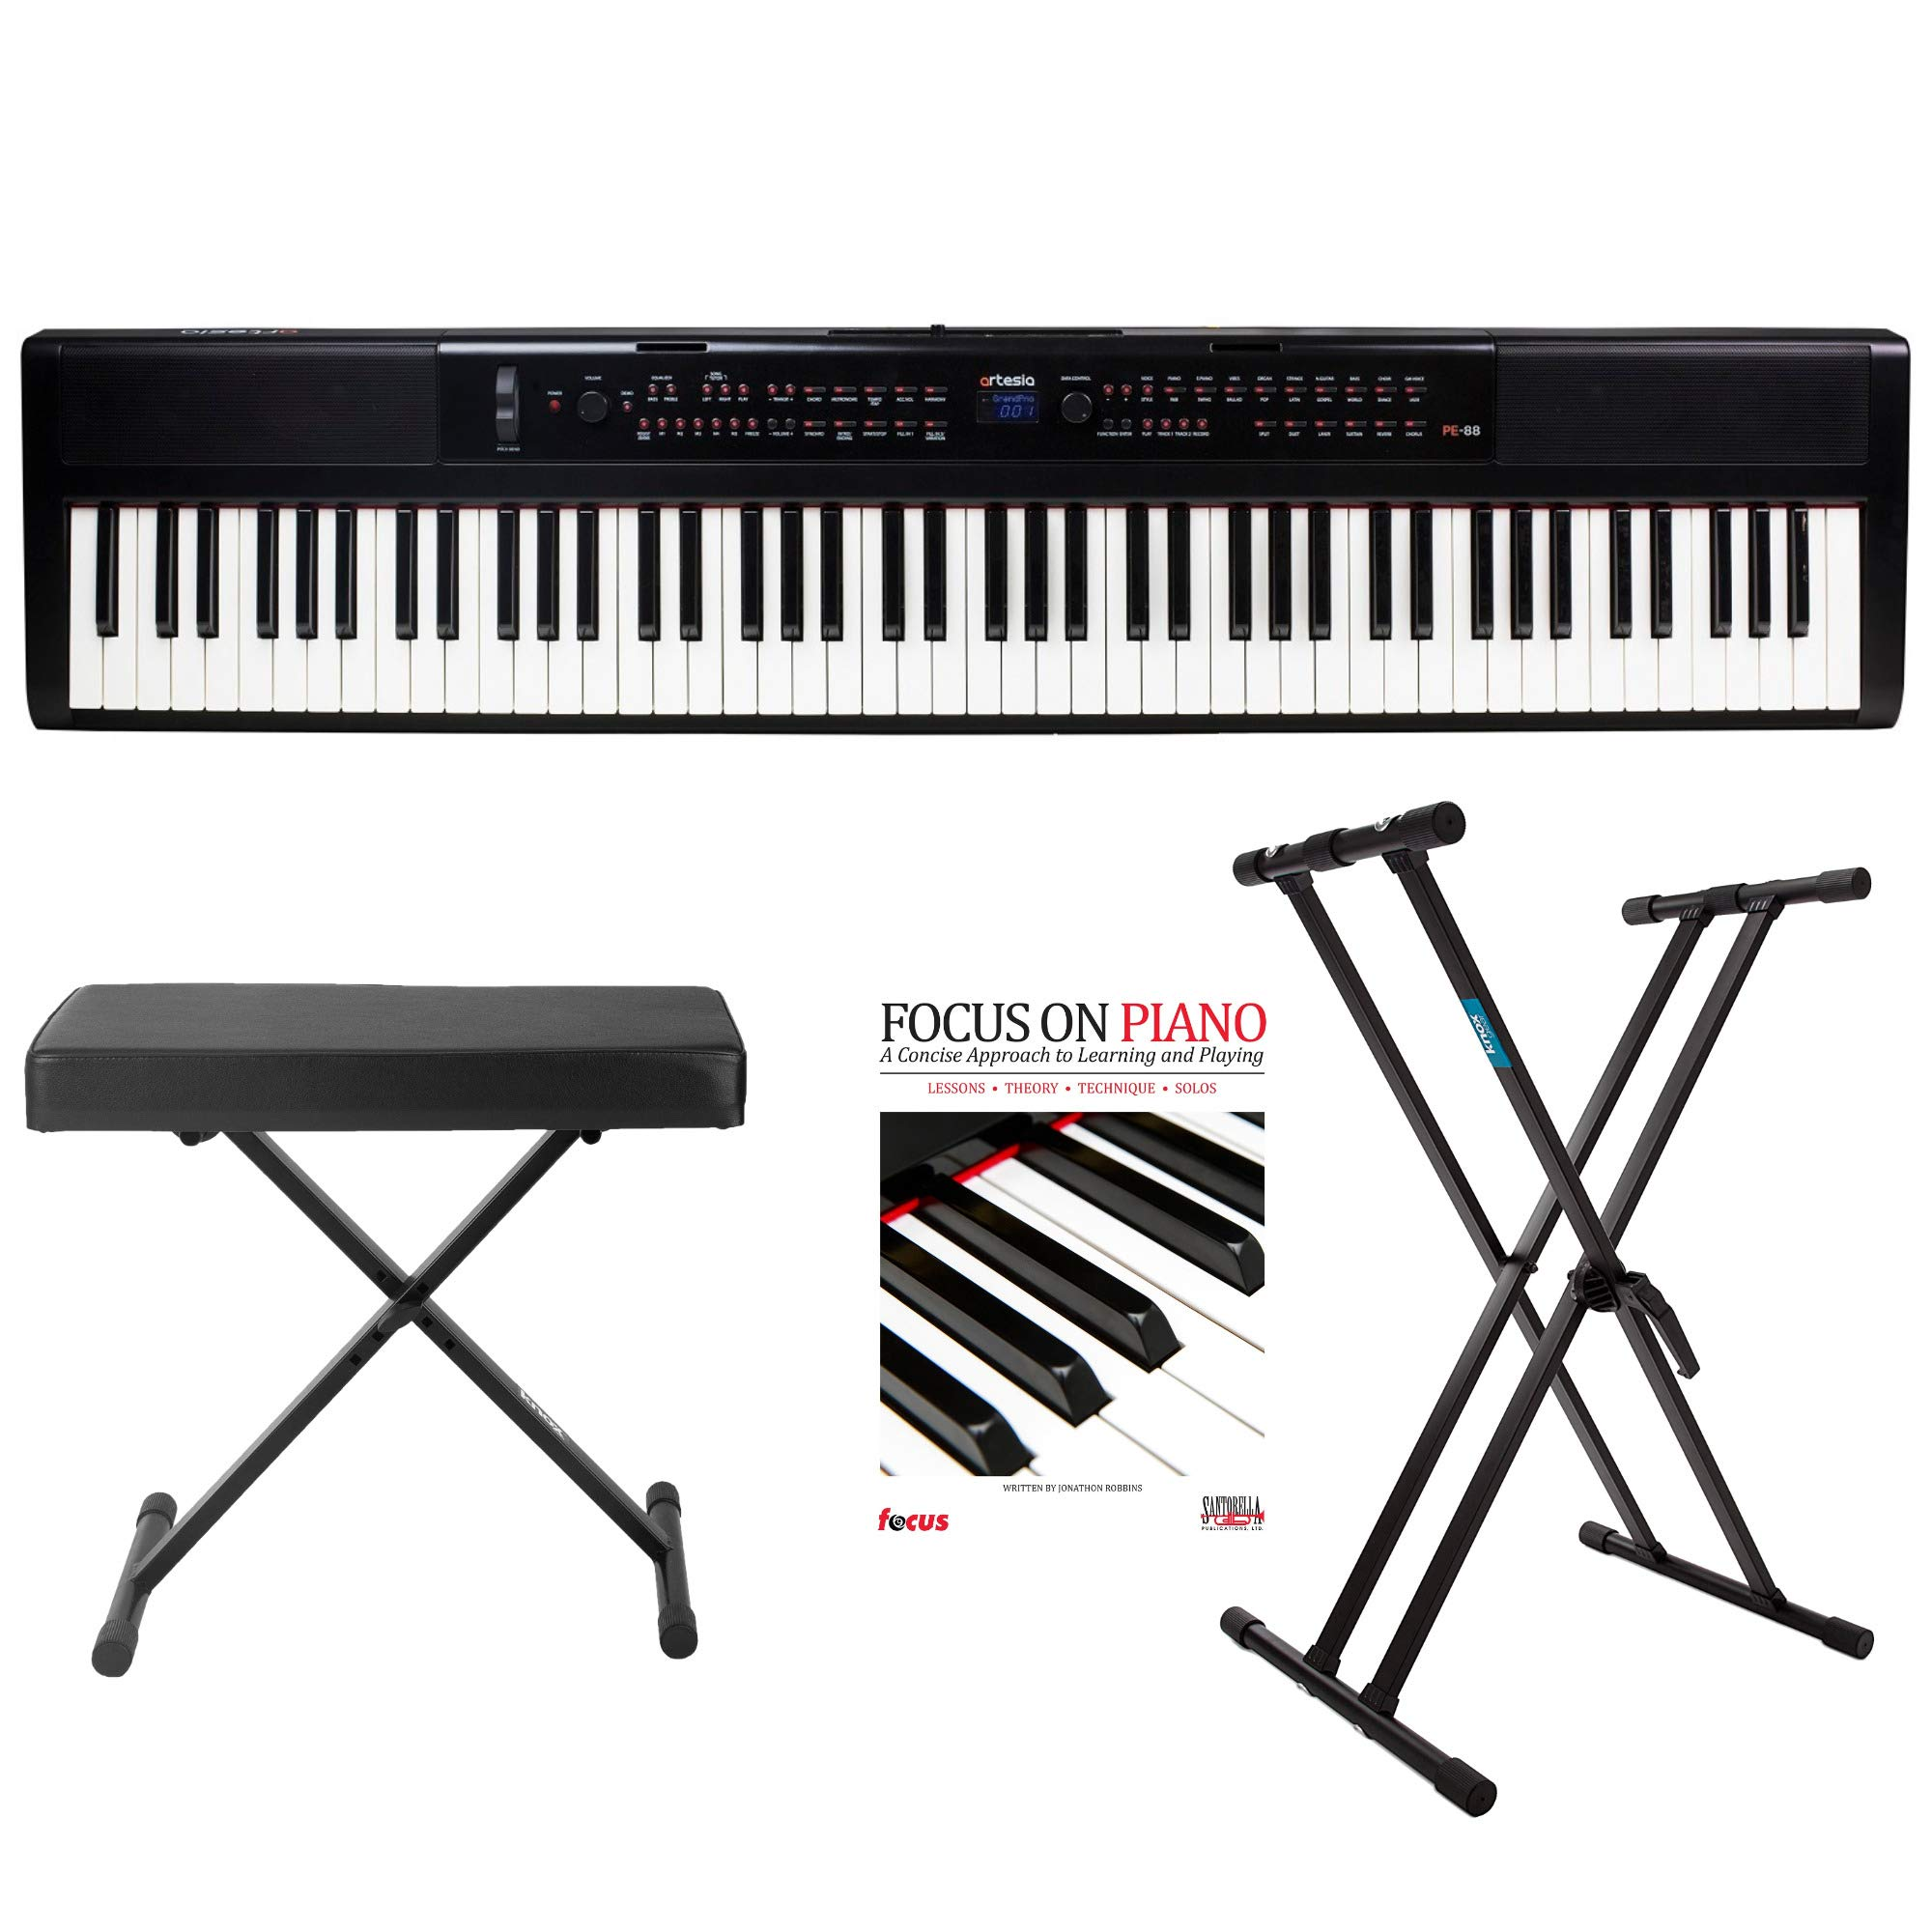 Artesia PE-88 Deluxe 88-Key Mobile Piano (Black) with Power Supply and Pedal with Knox Bench, Keyboard Stand and Focus on Piano Book/CD by Artesia